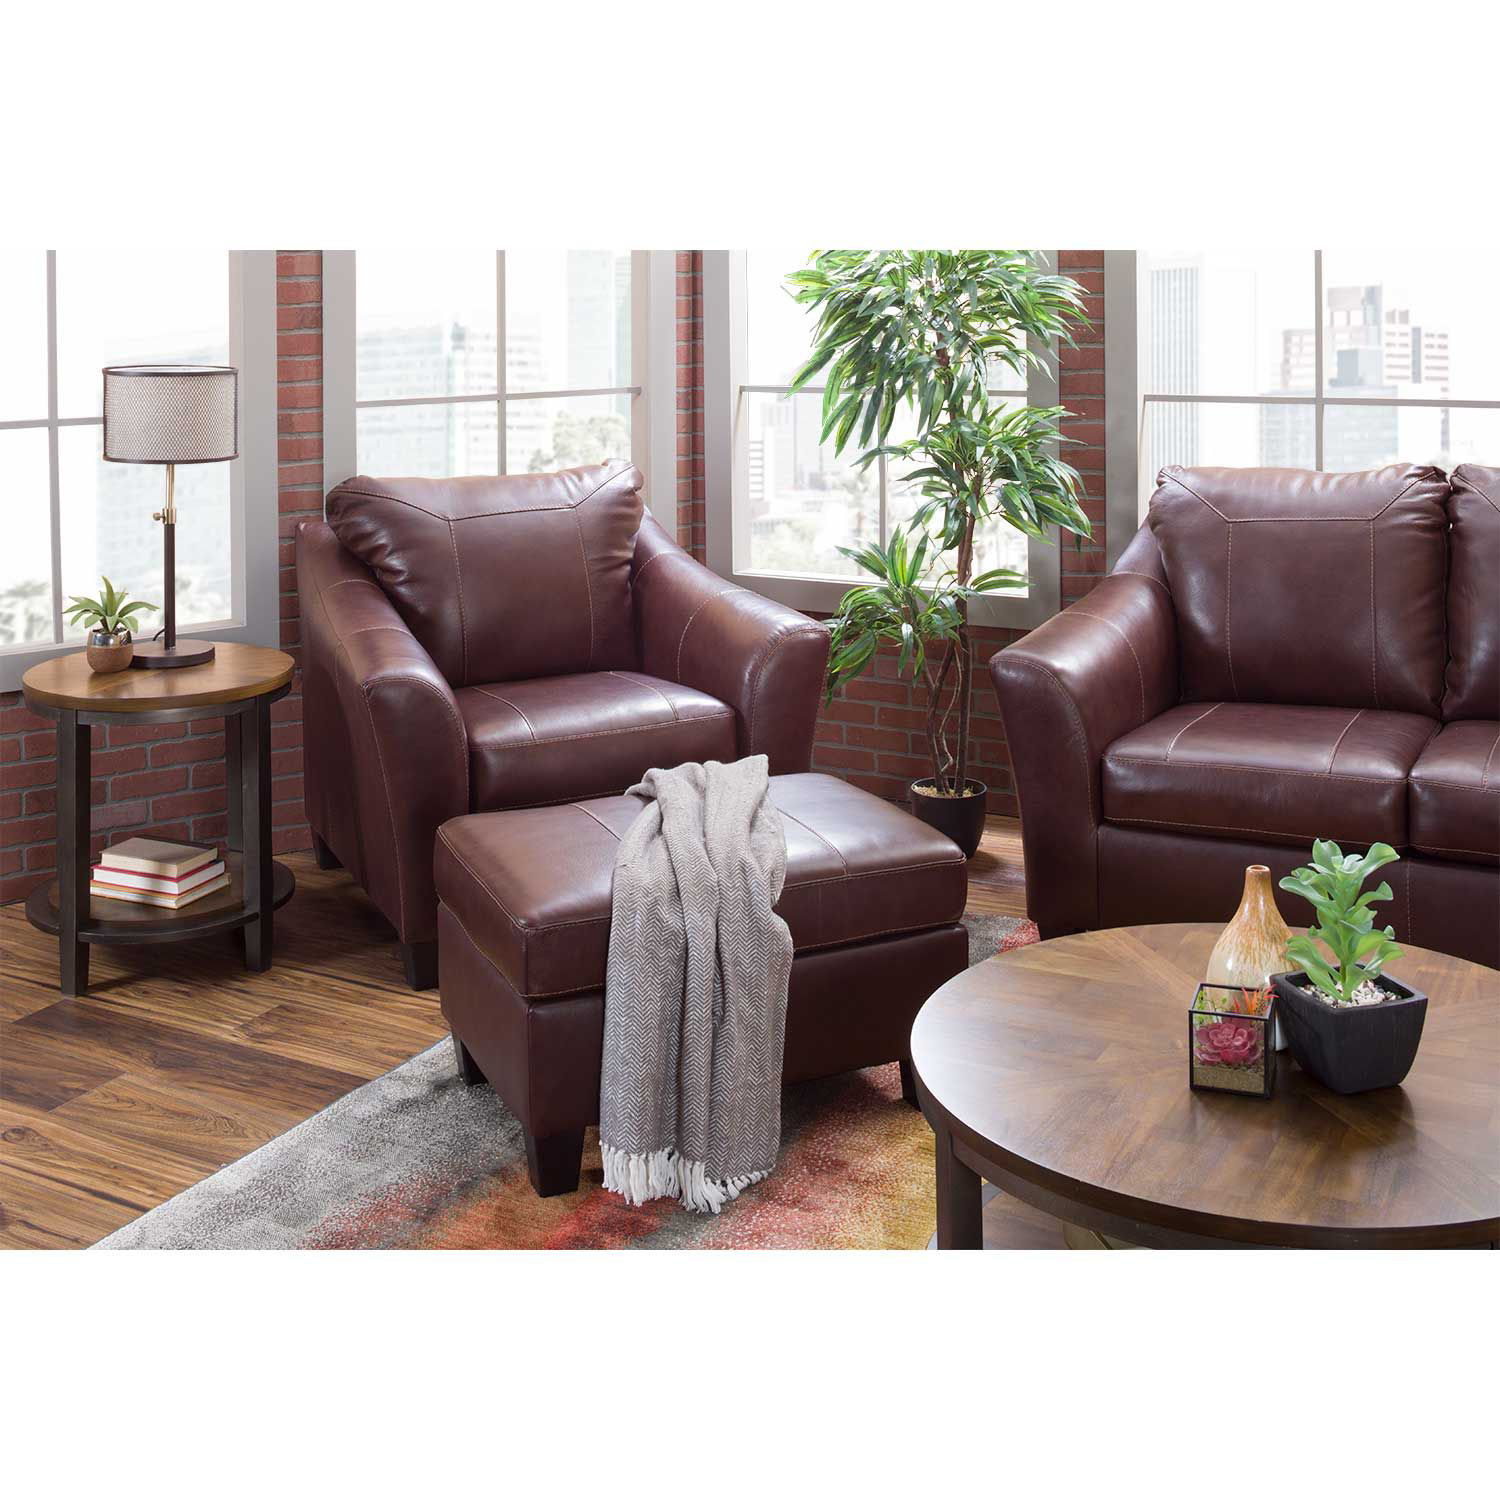 Picture of Fortney Mahogany Italian Leather Ottoman